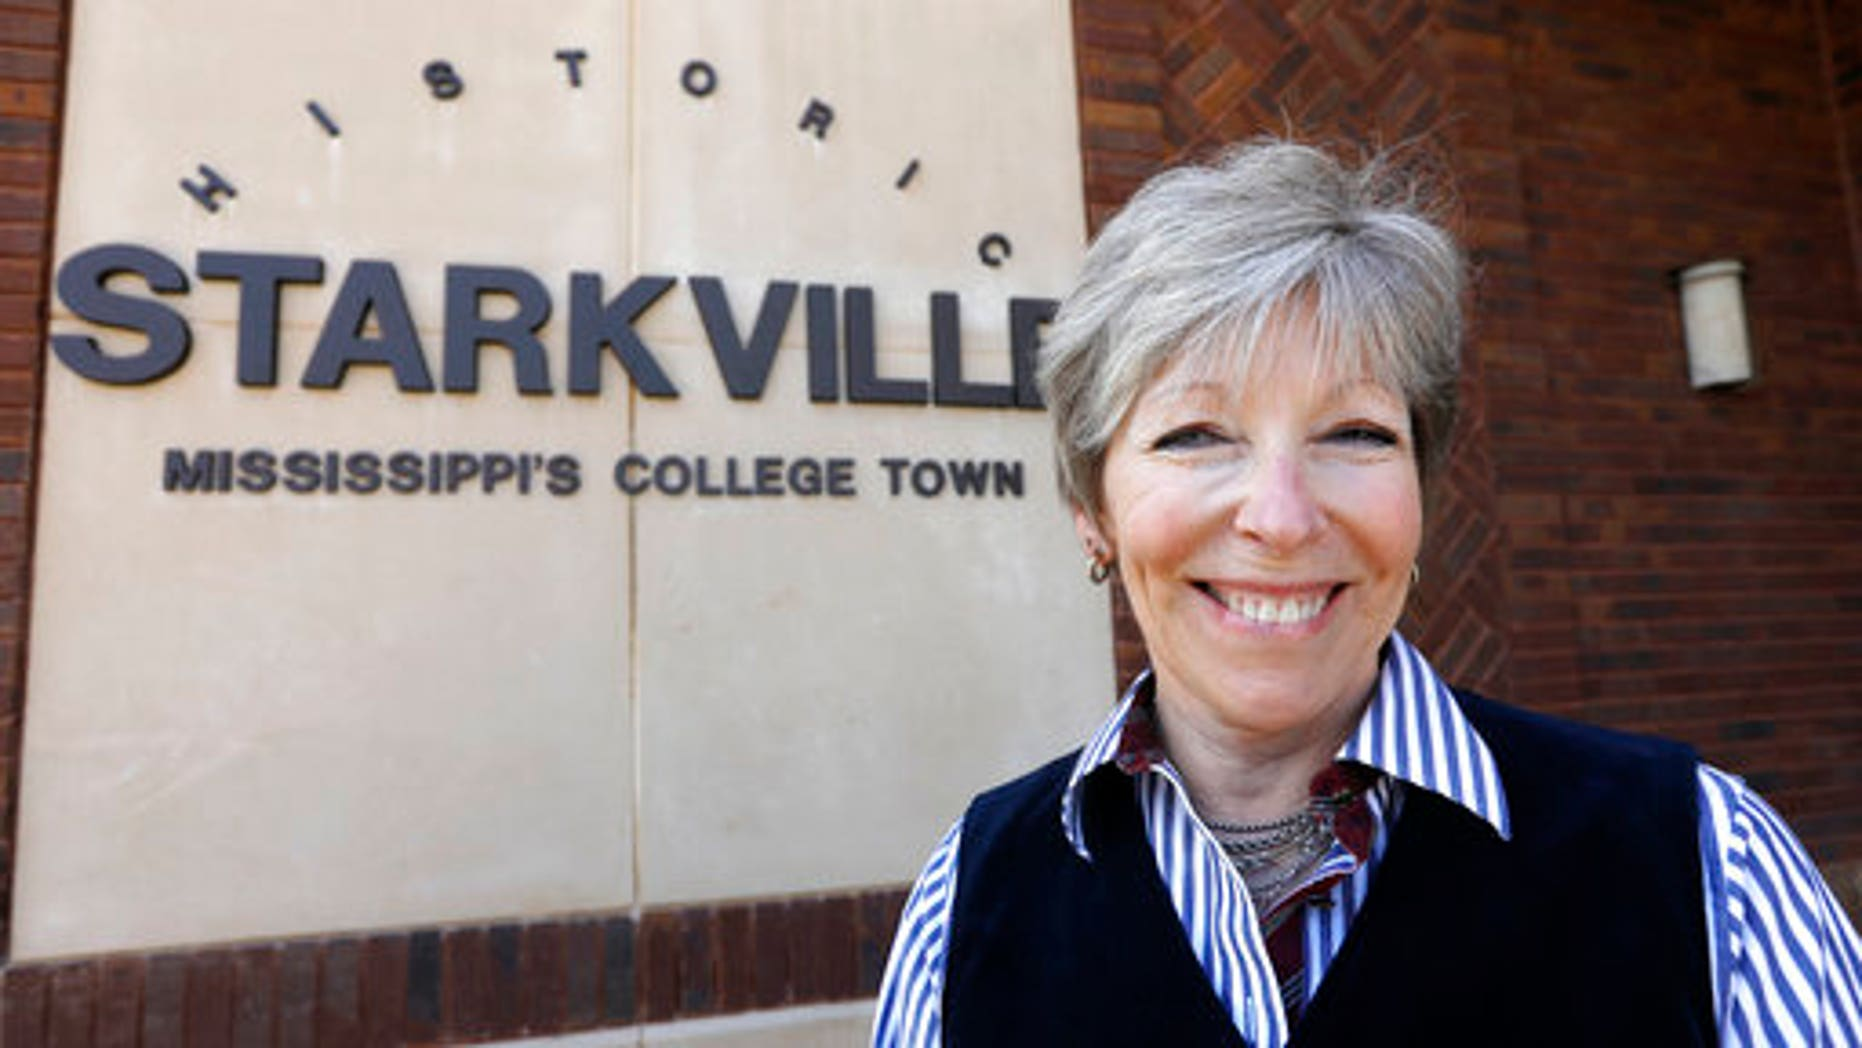 Starkville Mayor Lynn Spruill cast the deciding vote allowing a parade permit requested by Starkville Pride, an LGBT support group.